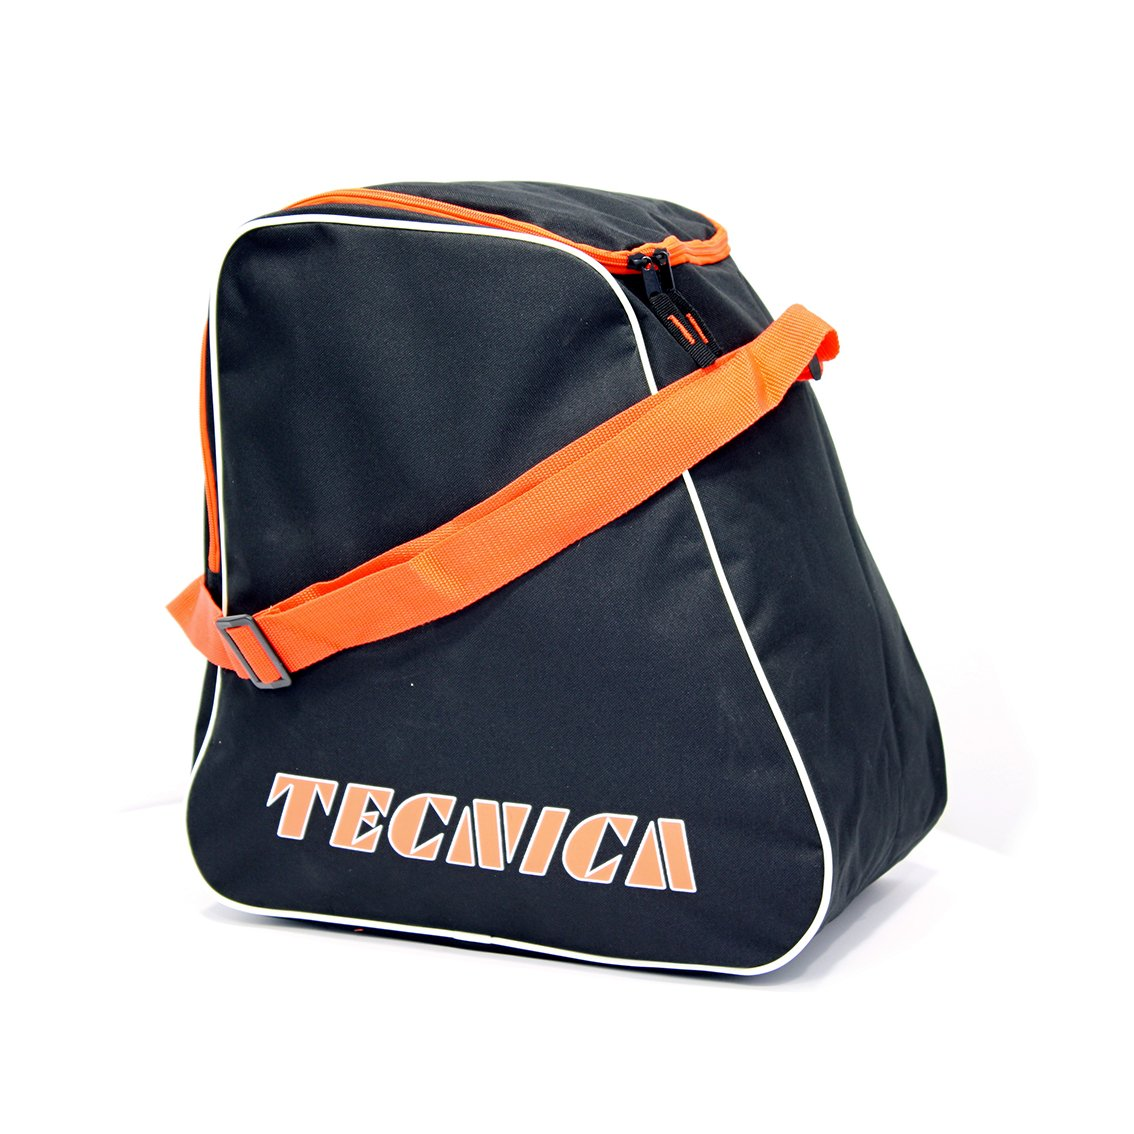 Tecnica Skiboot Bag Black Orange